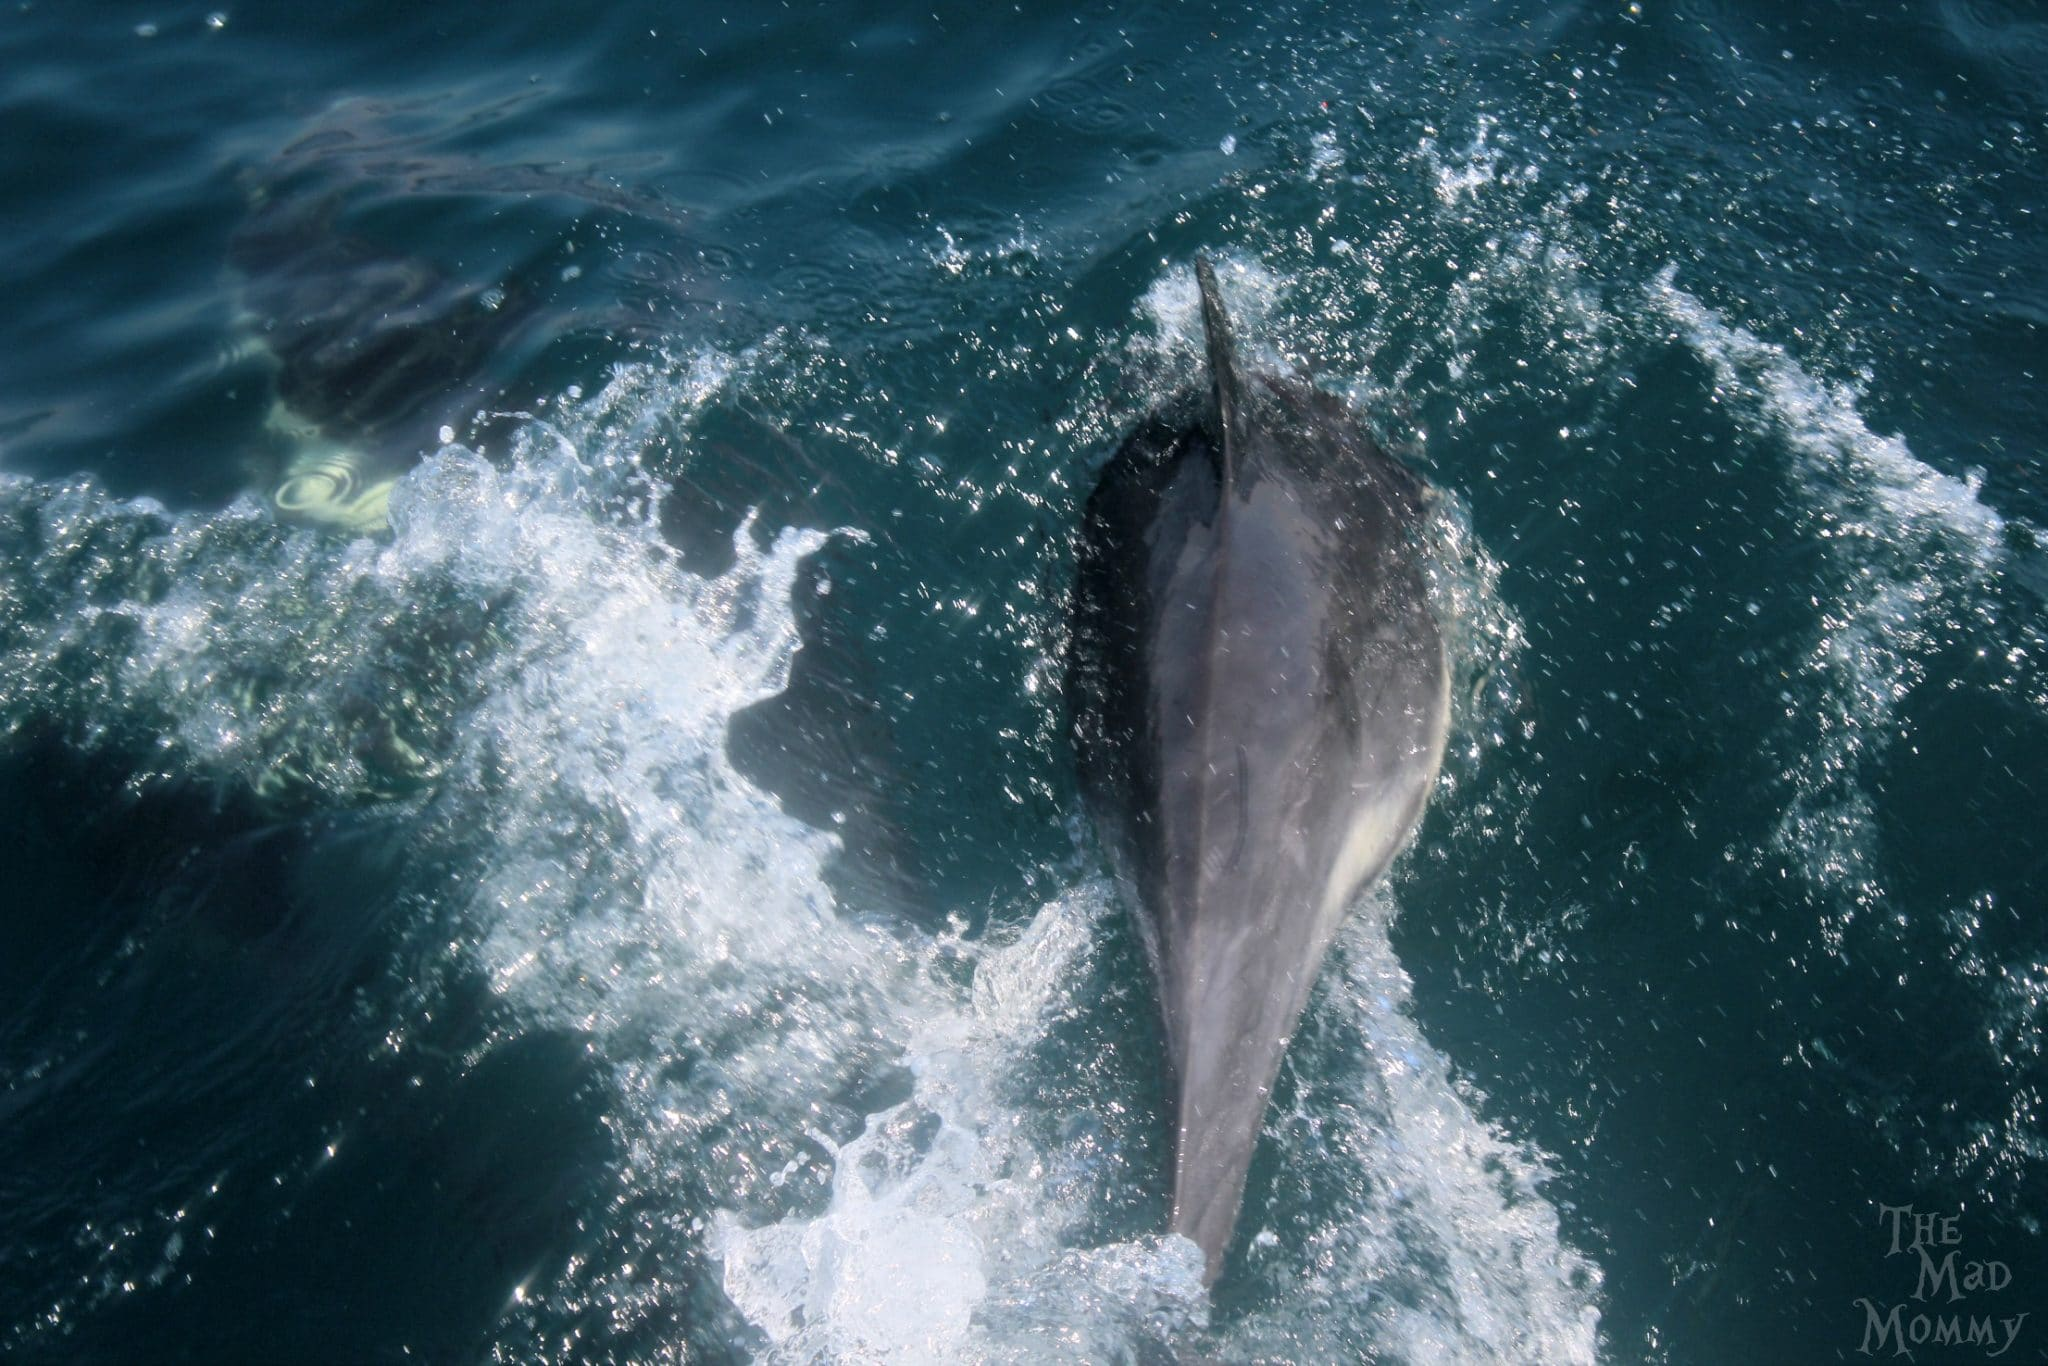 Common Dolphin diving and tail slapping during a whale watching tour.